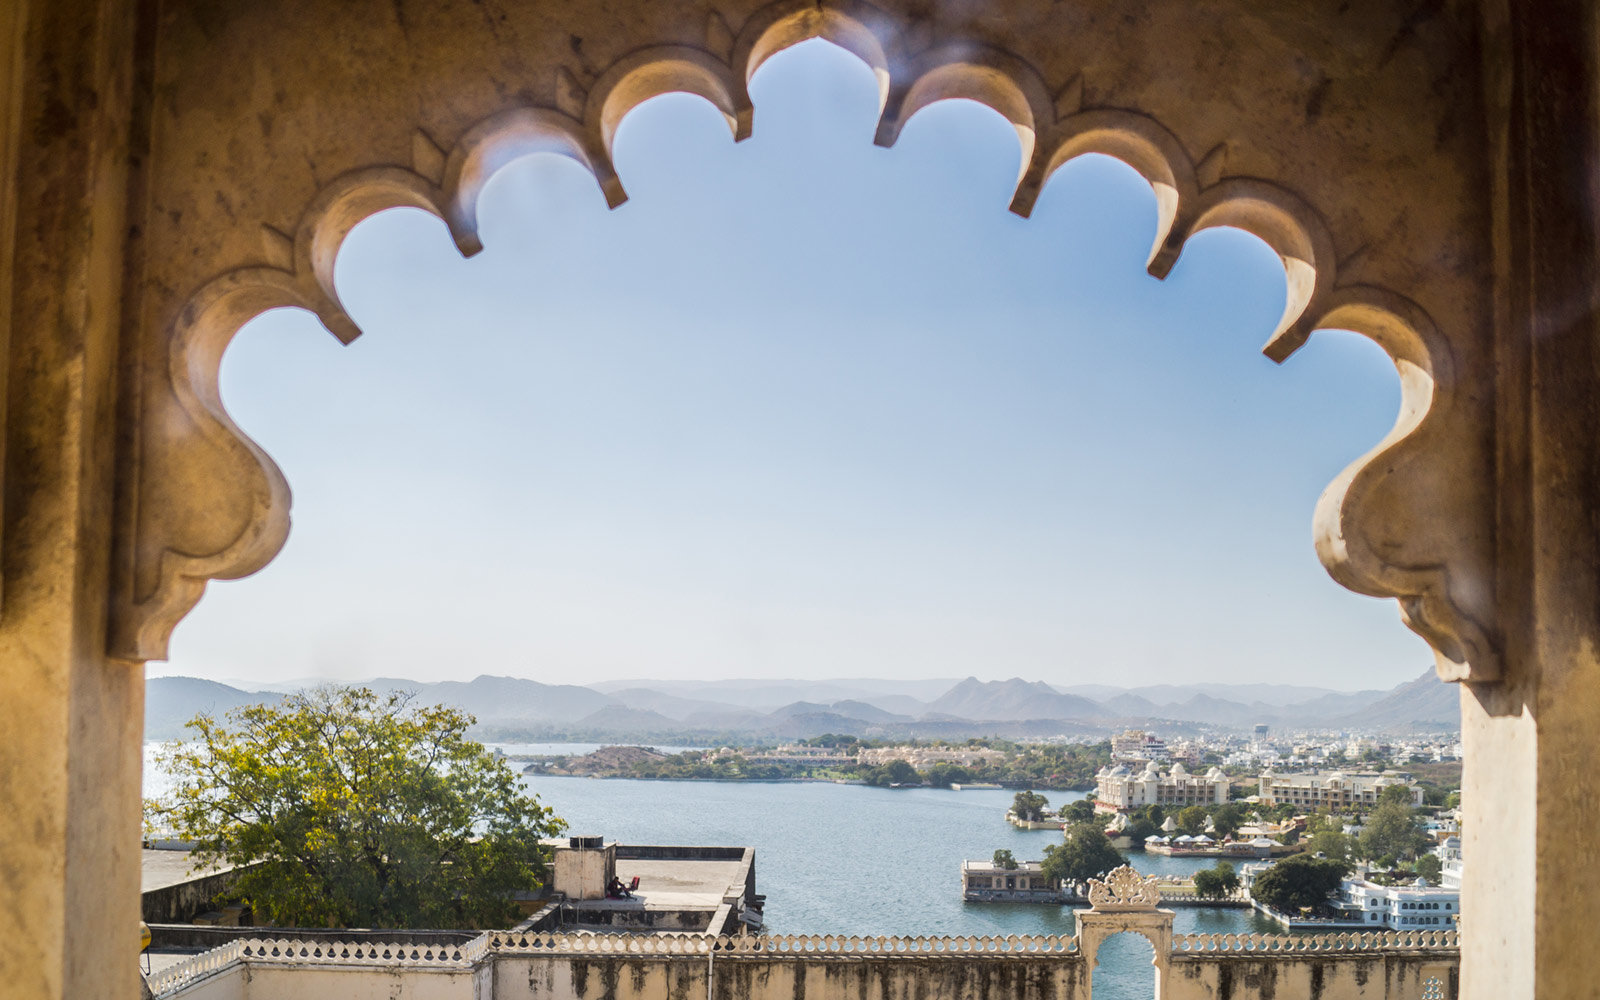 palace and lake pichola udaipur rajasthan india 03 TOPCITIESWB18